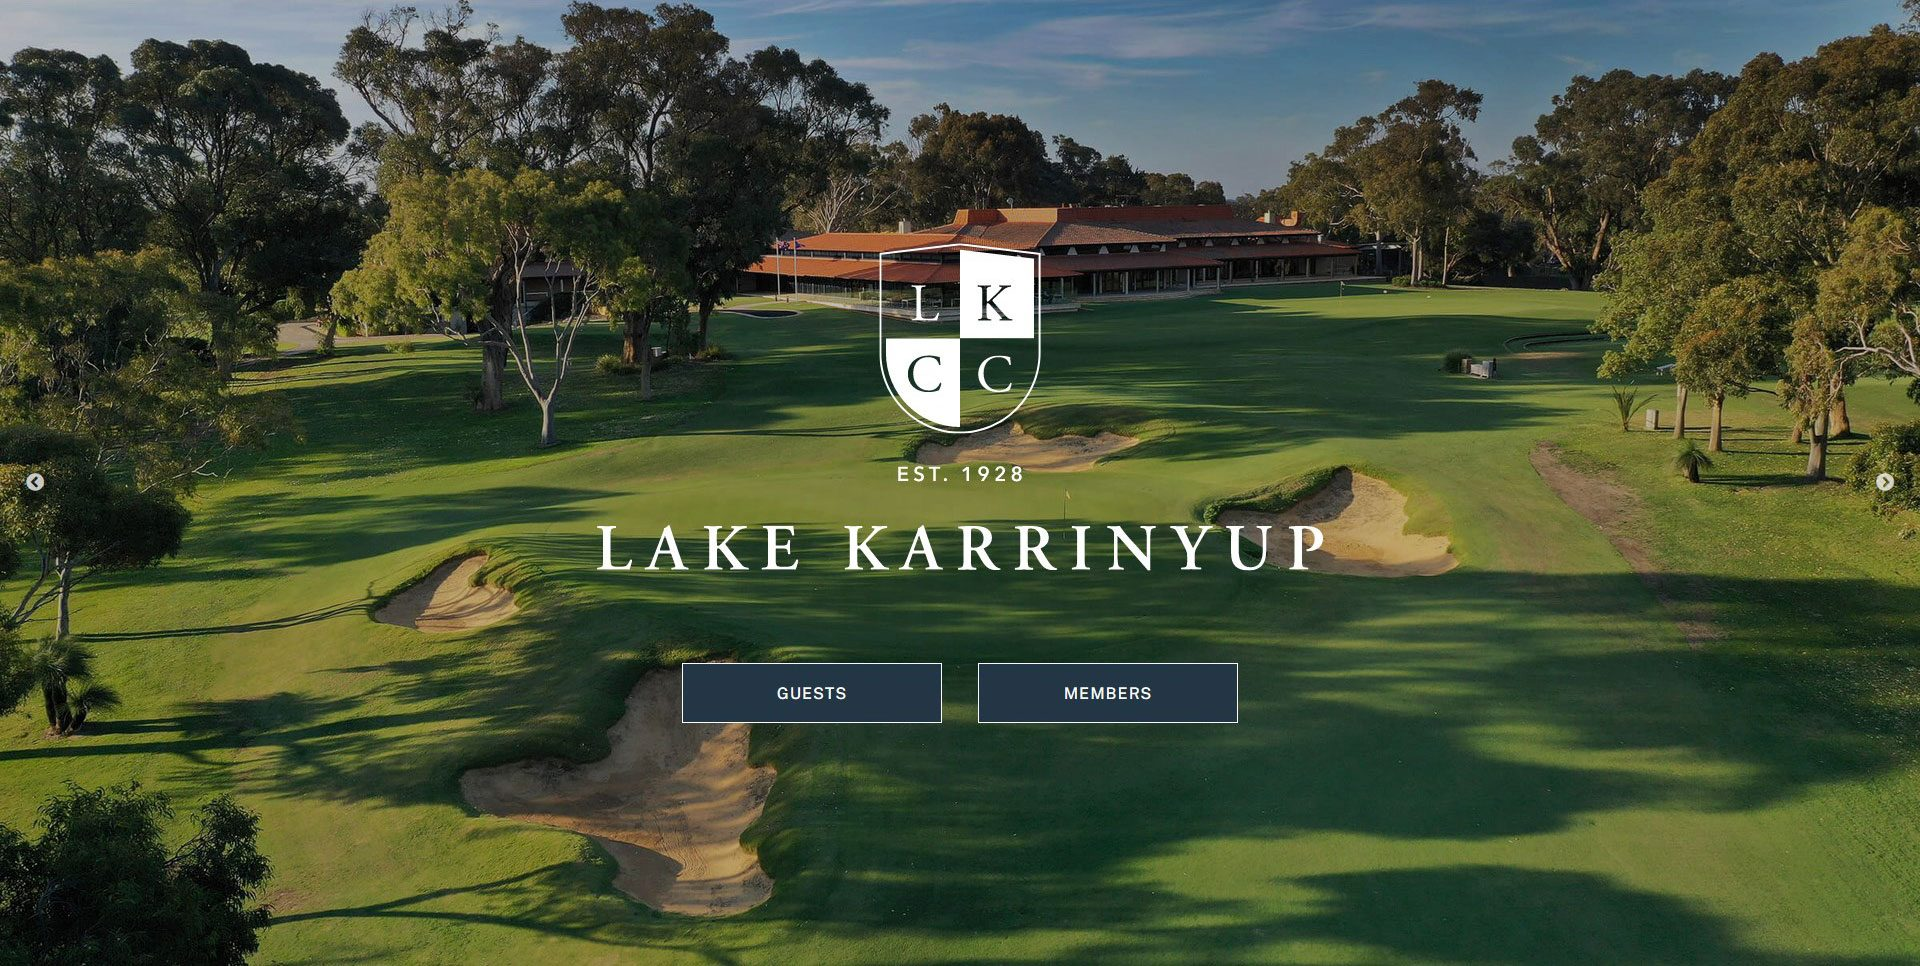 Lake Karrinyup Golf Club Website